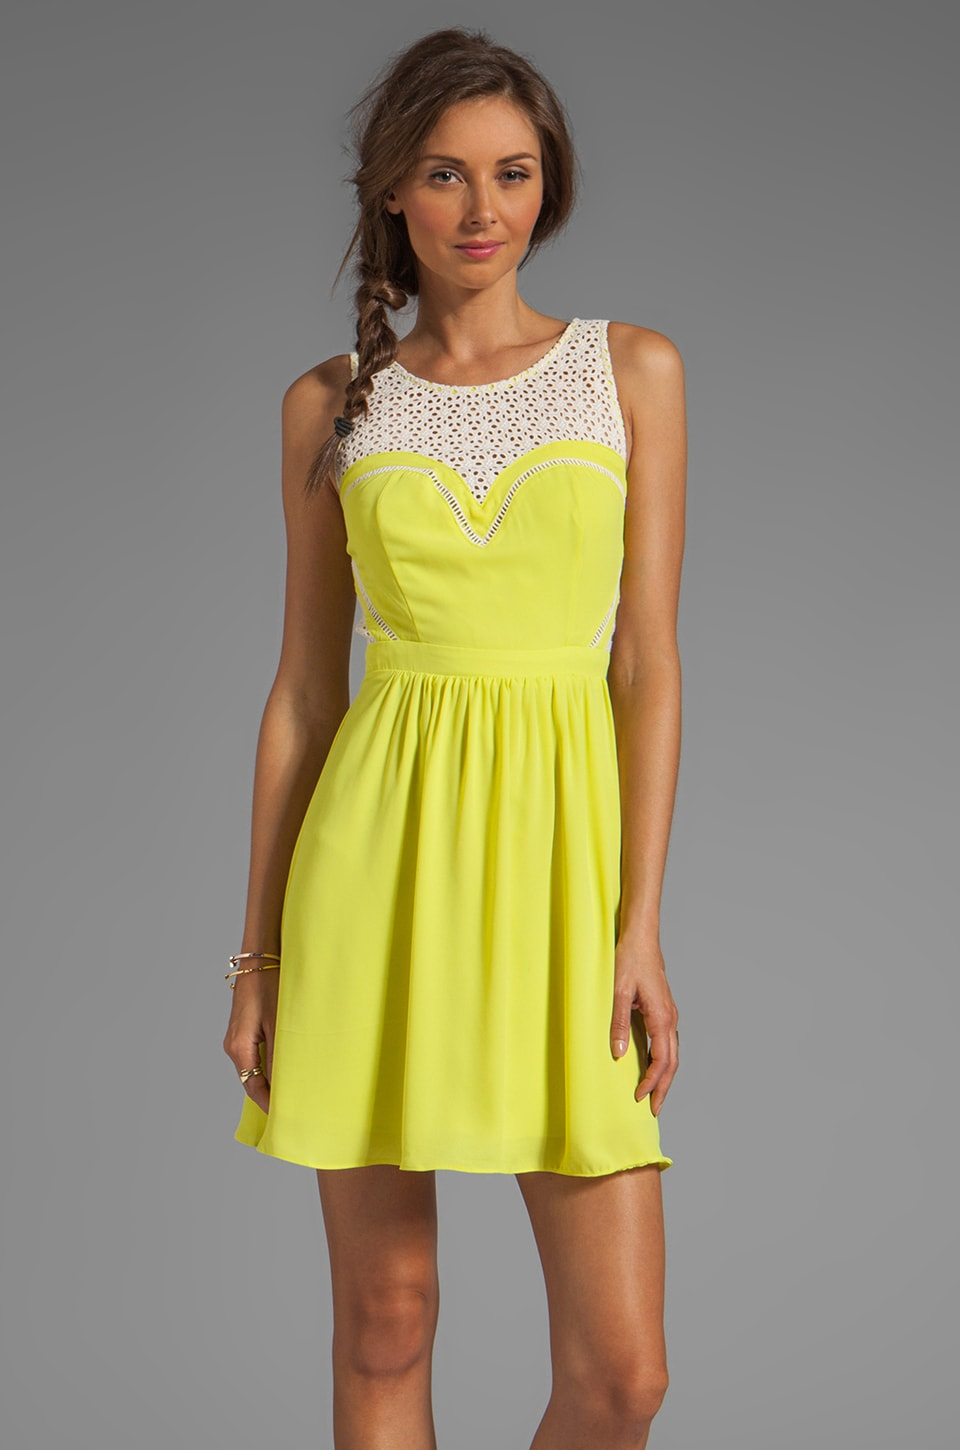 Greylin Avery Lace Cutout Dress in Citron